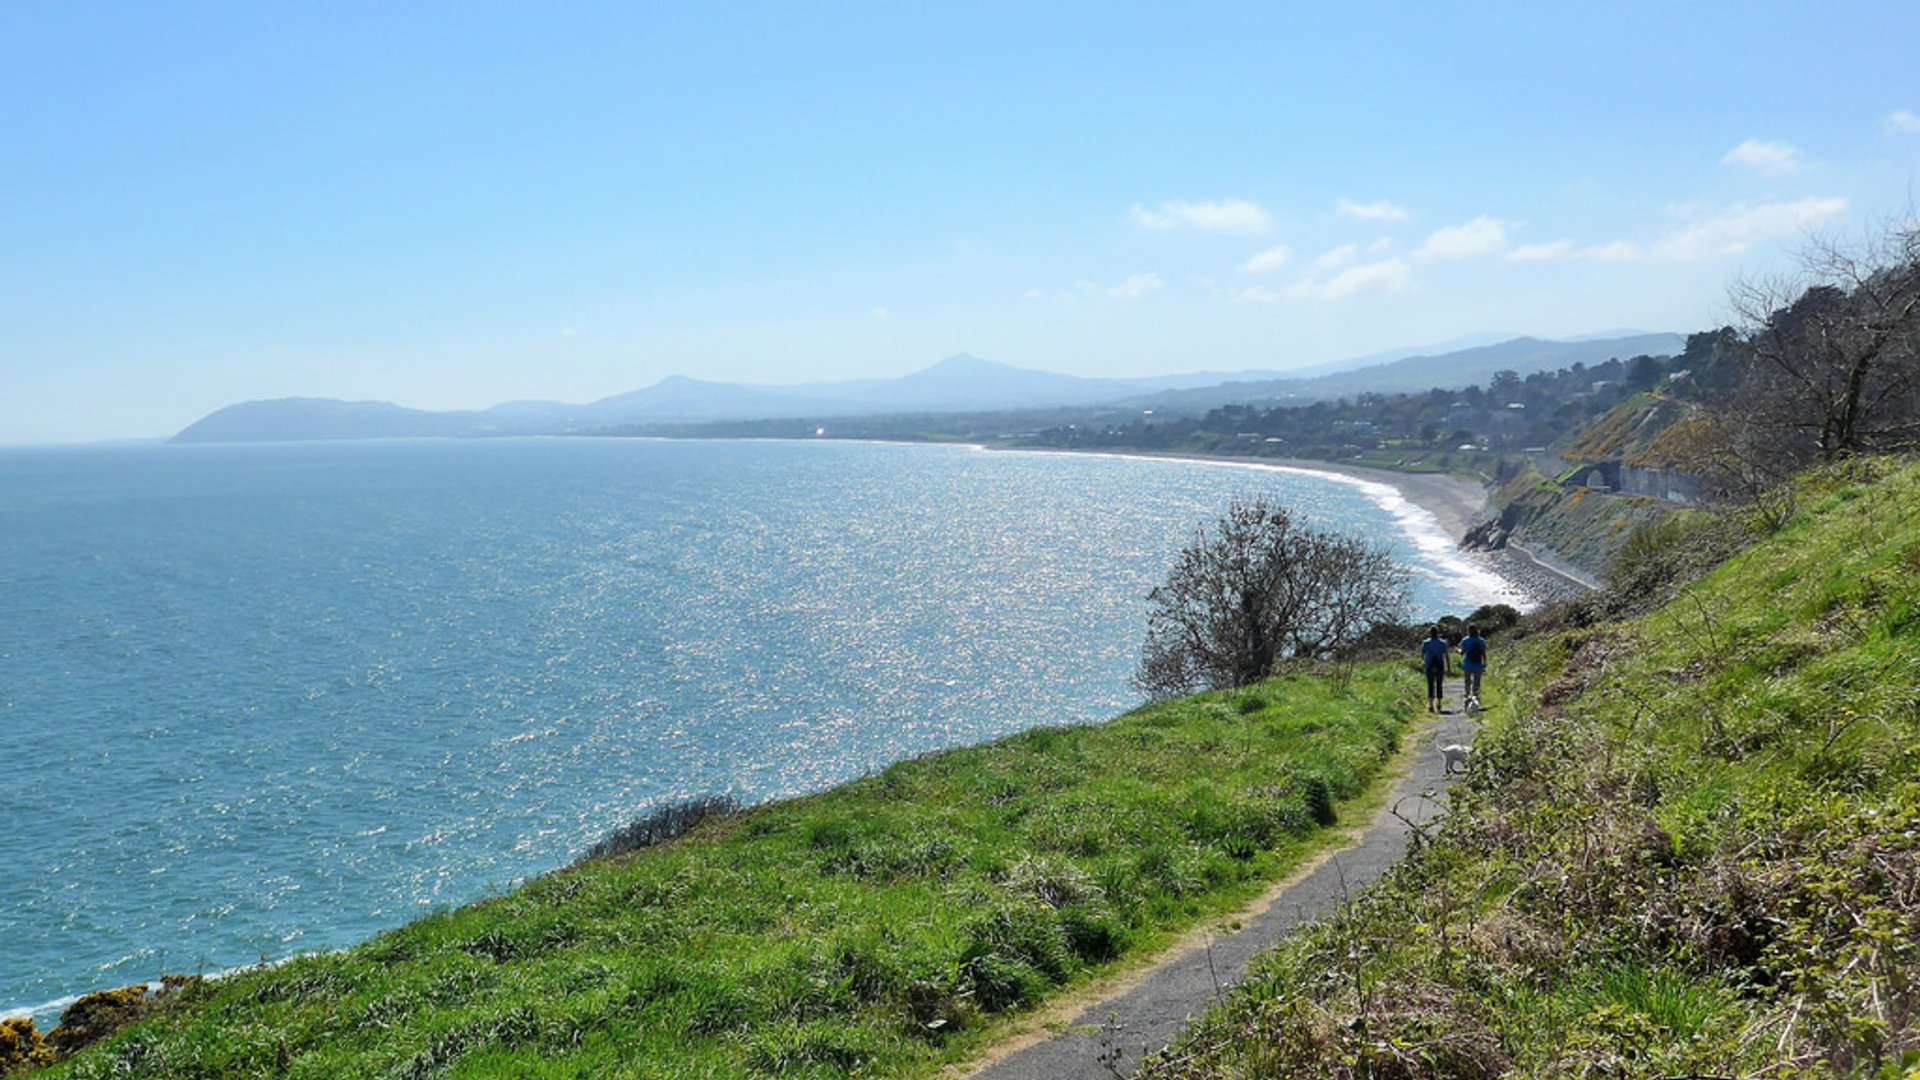 View of Killiney Bay, north of Bray Head 2019